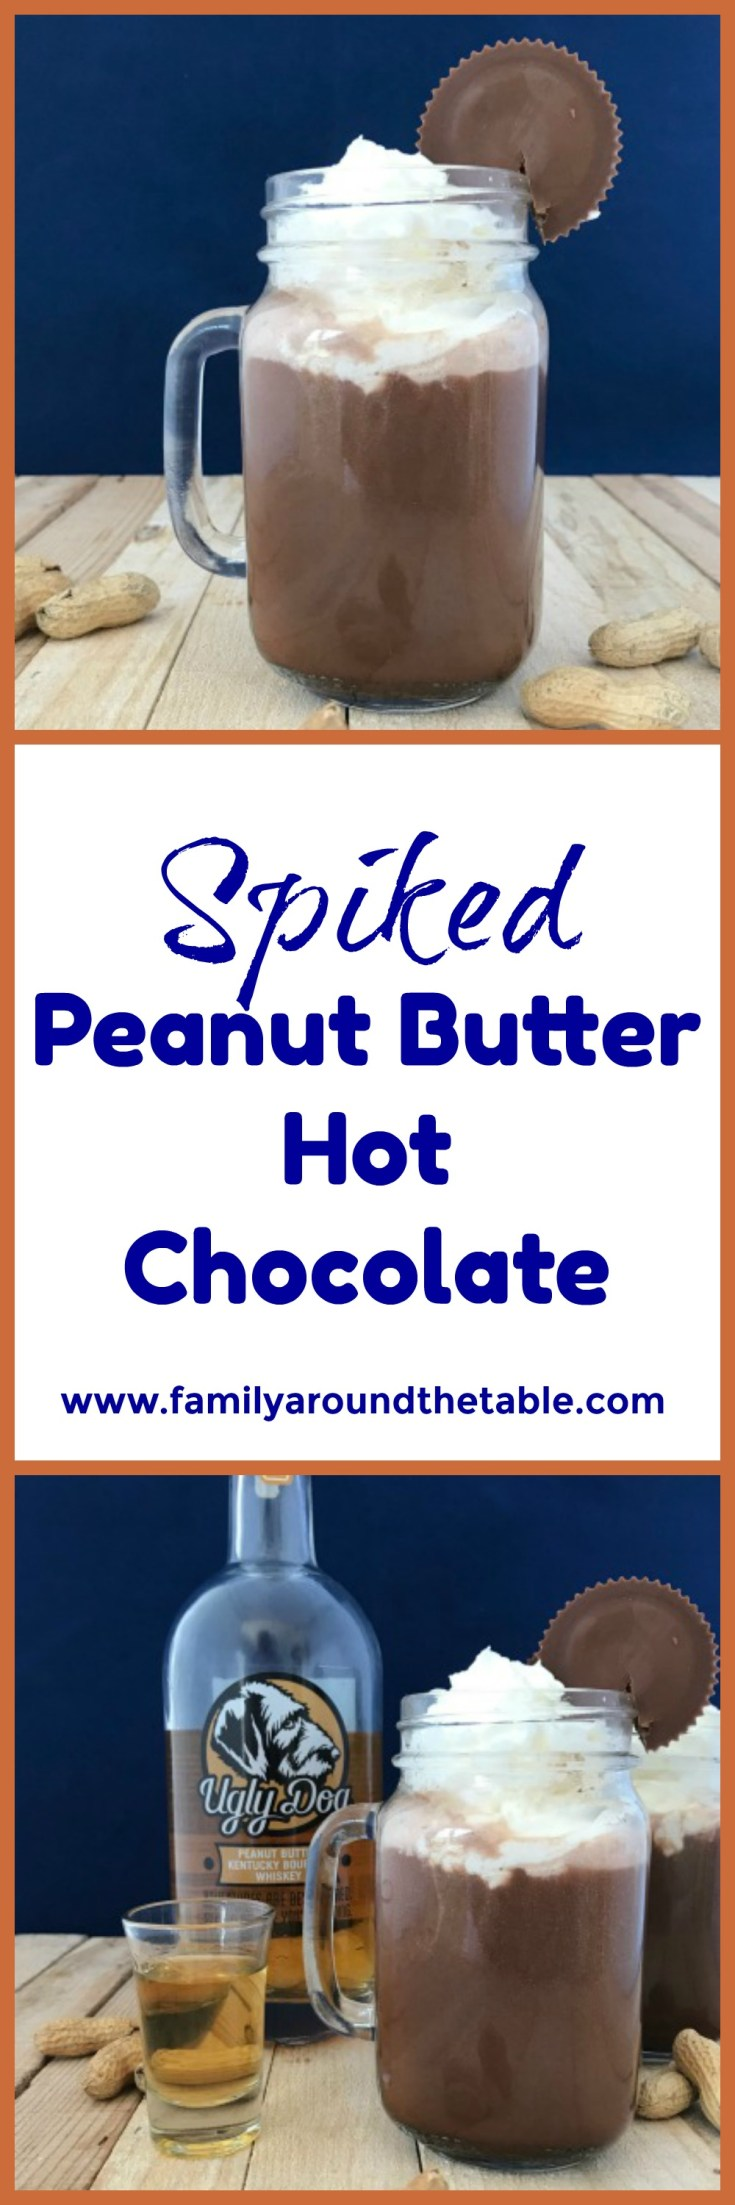 Peanut butter whiskey takes your hot chocolate to the next level.